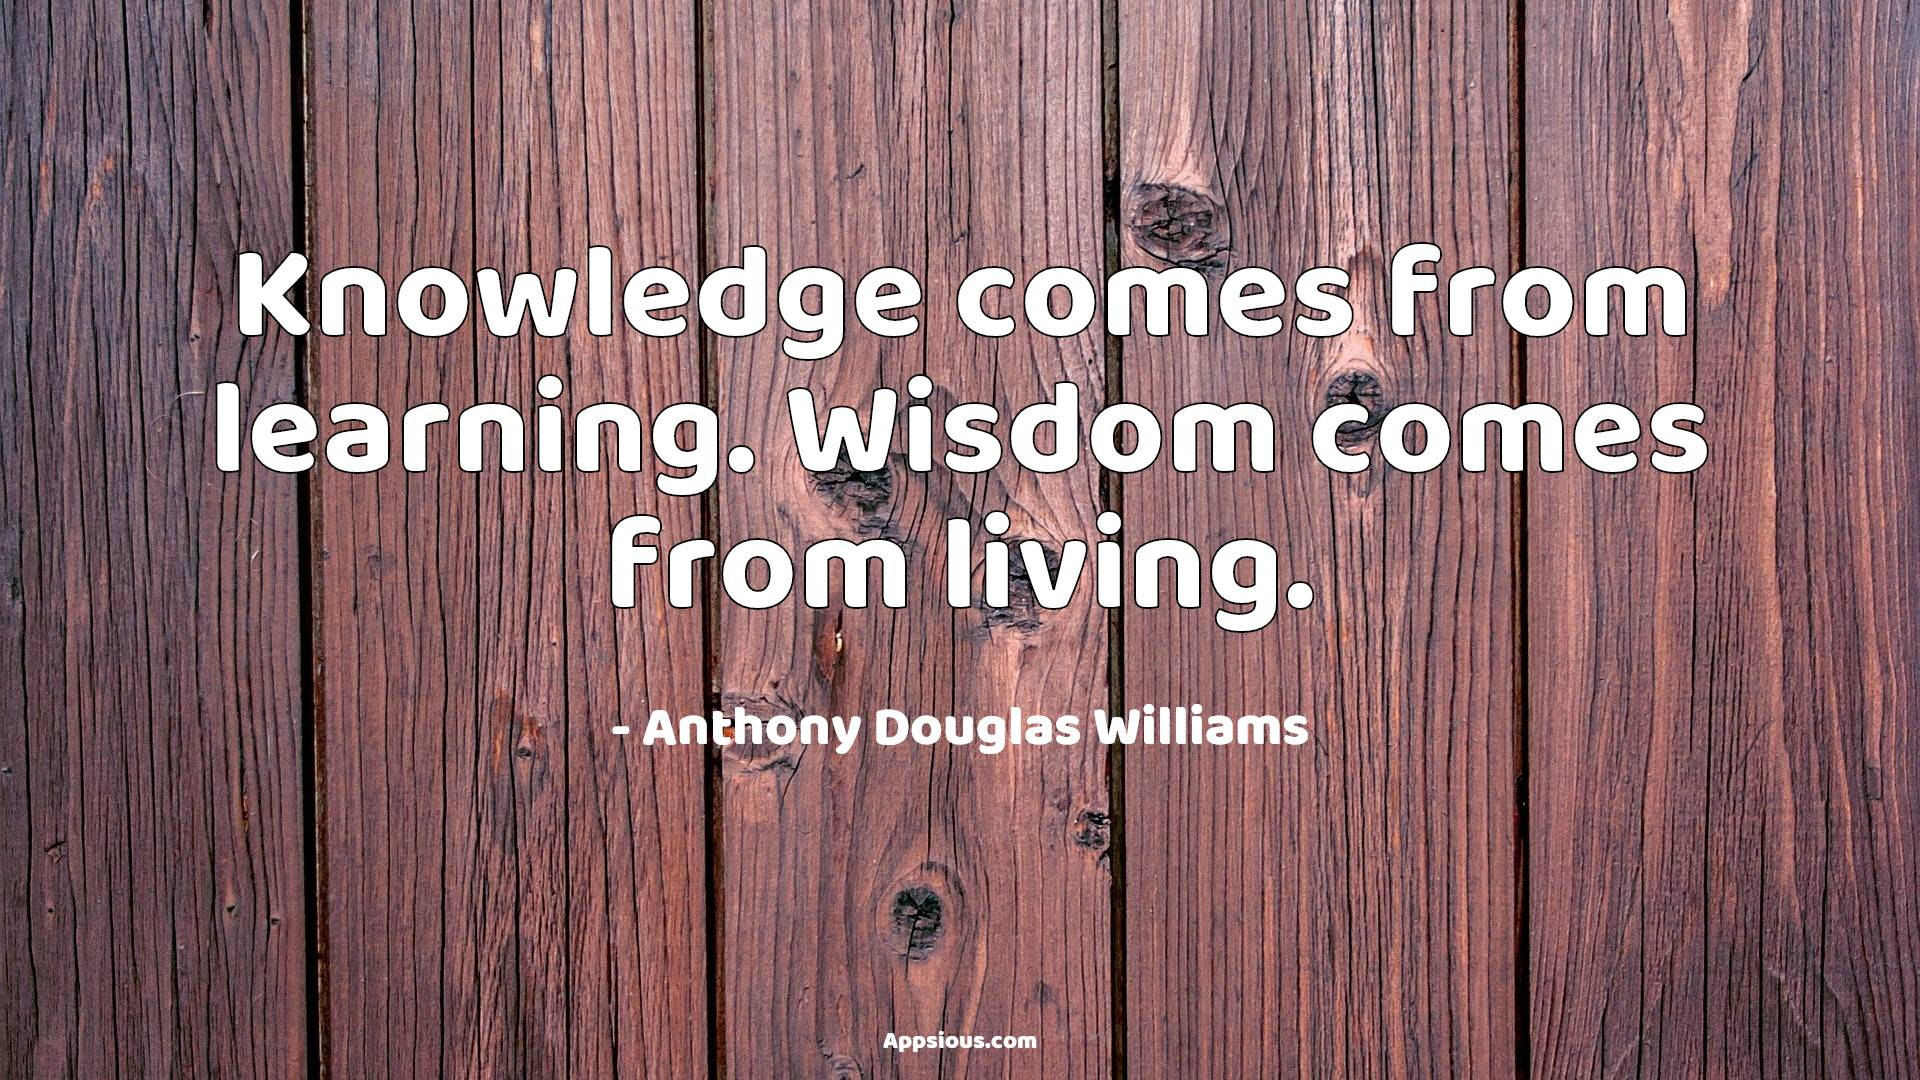 Knowledge comes from learning. Wisdom comes from living.